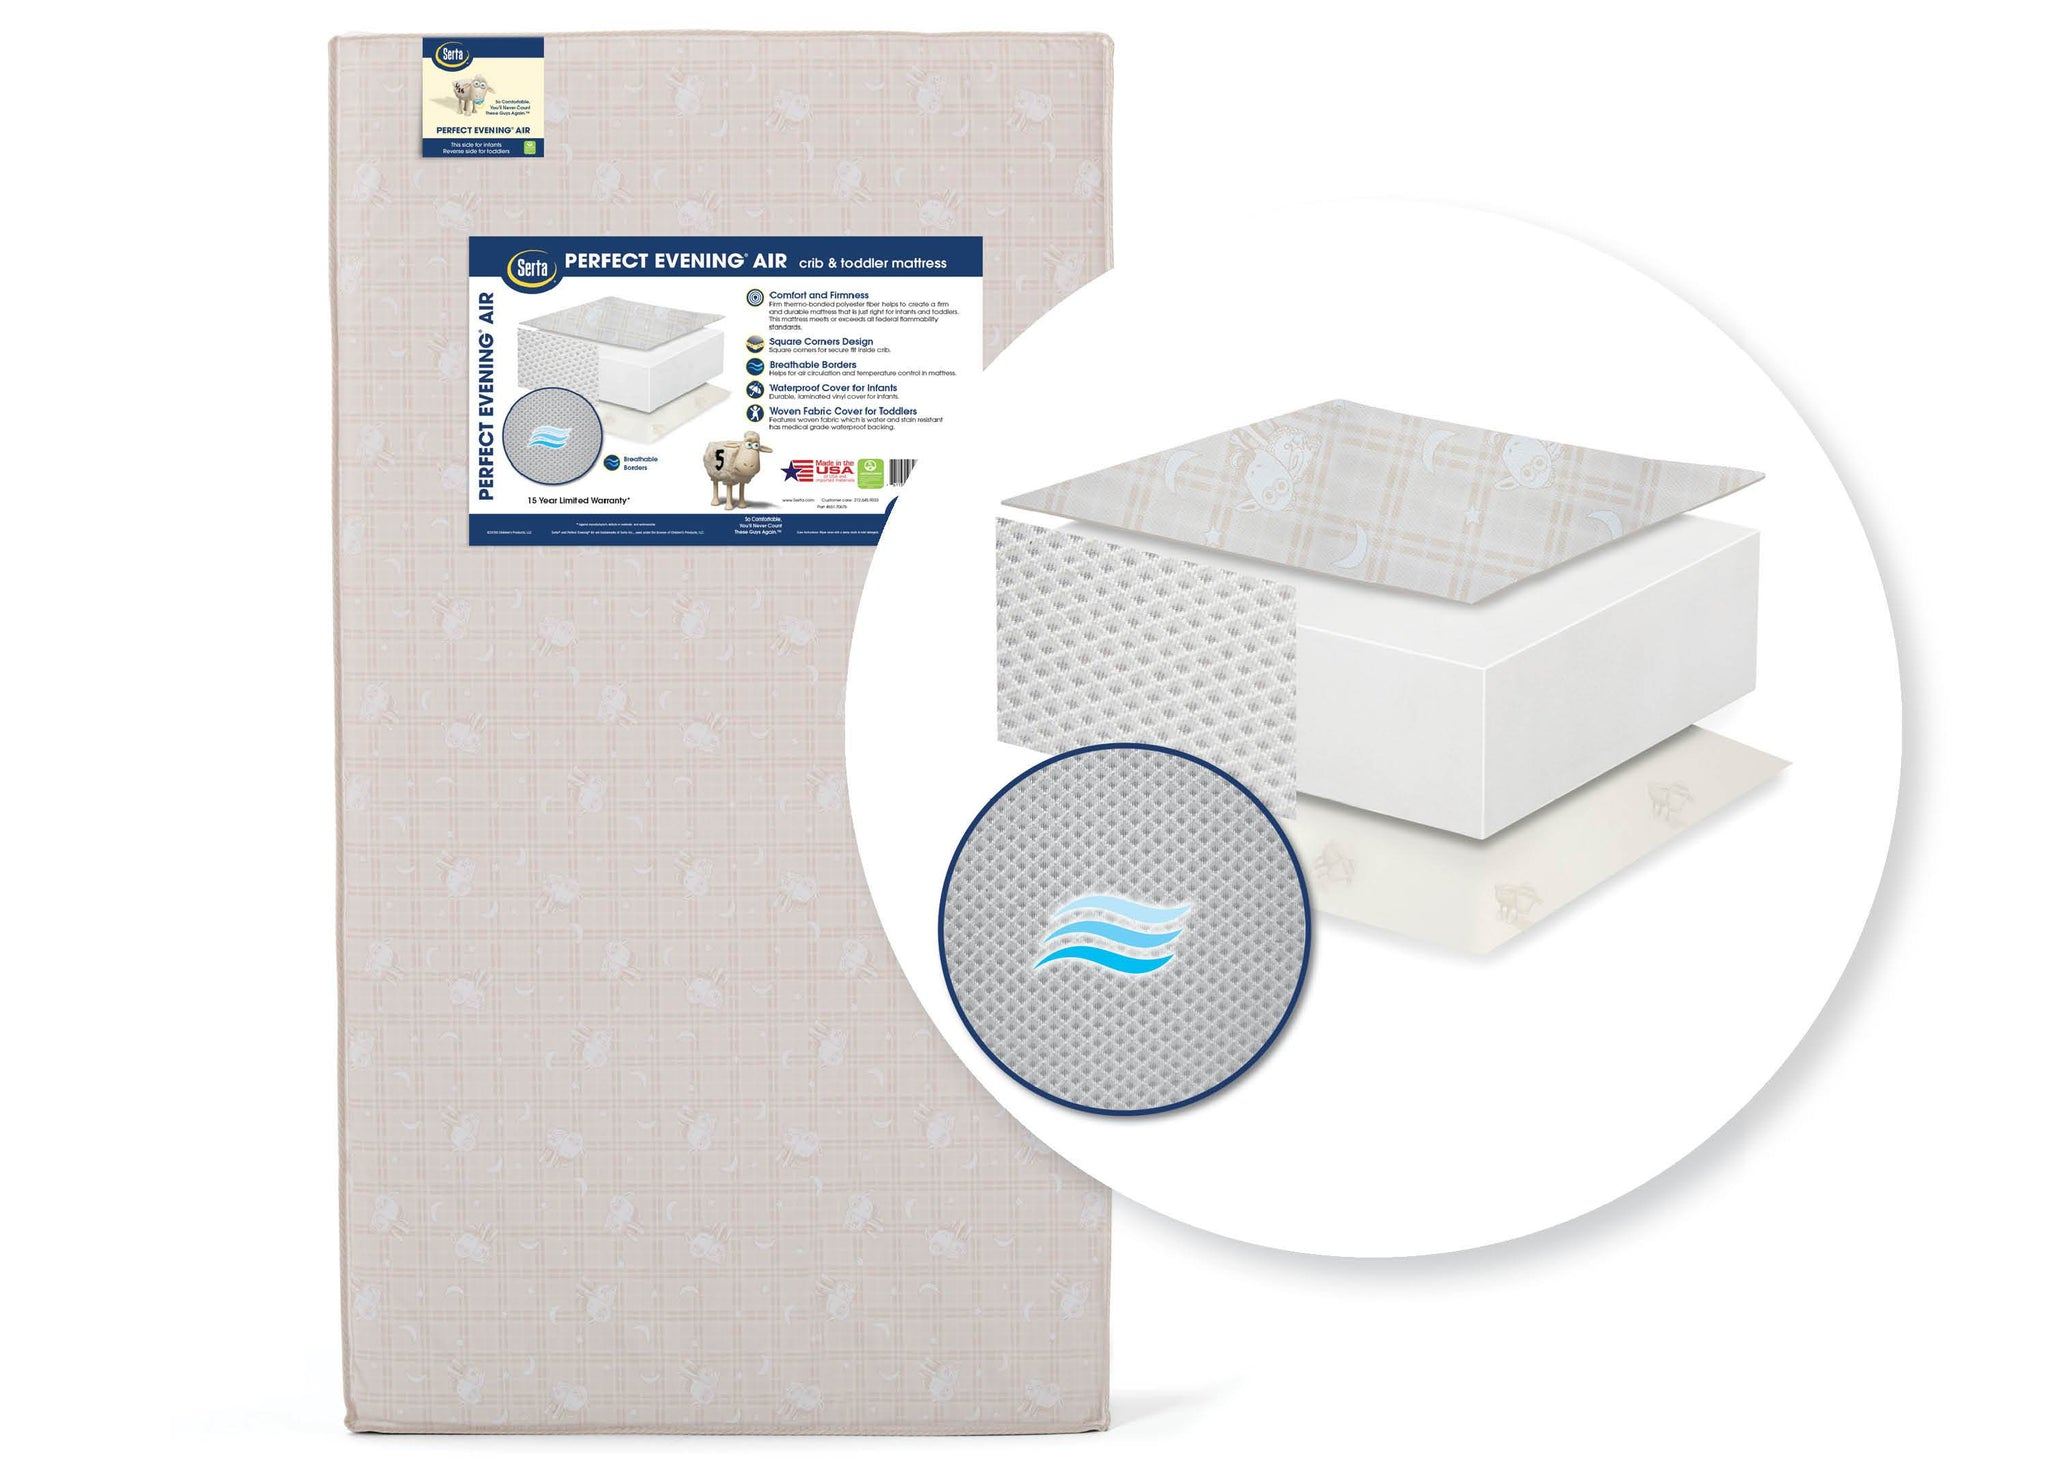 Serta Perfect Evening Air Crib and Toddler Mattress (A41119-1117), a1a Perfect Evening Air Crib and Toddler Mattress No Color (NO)